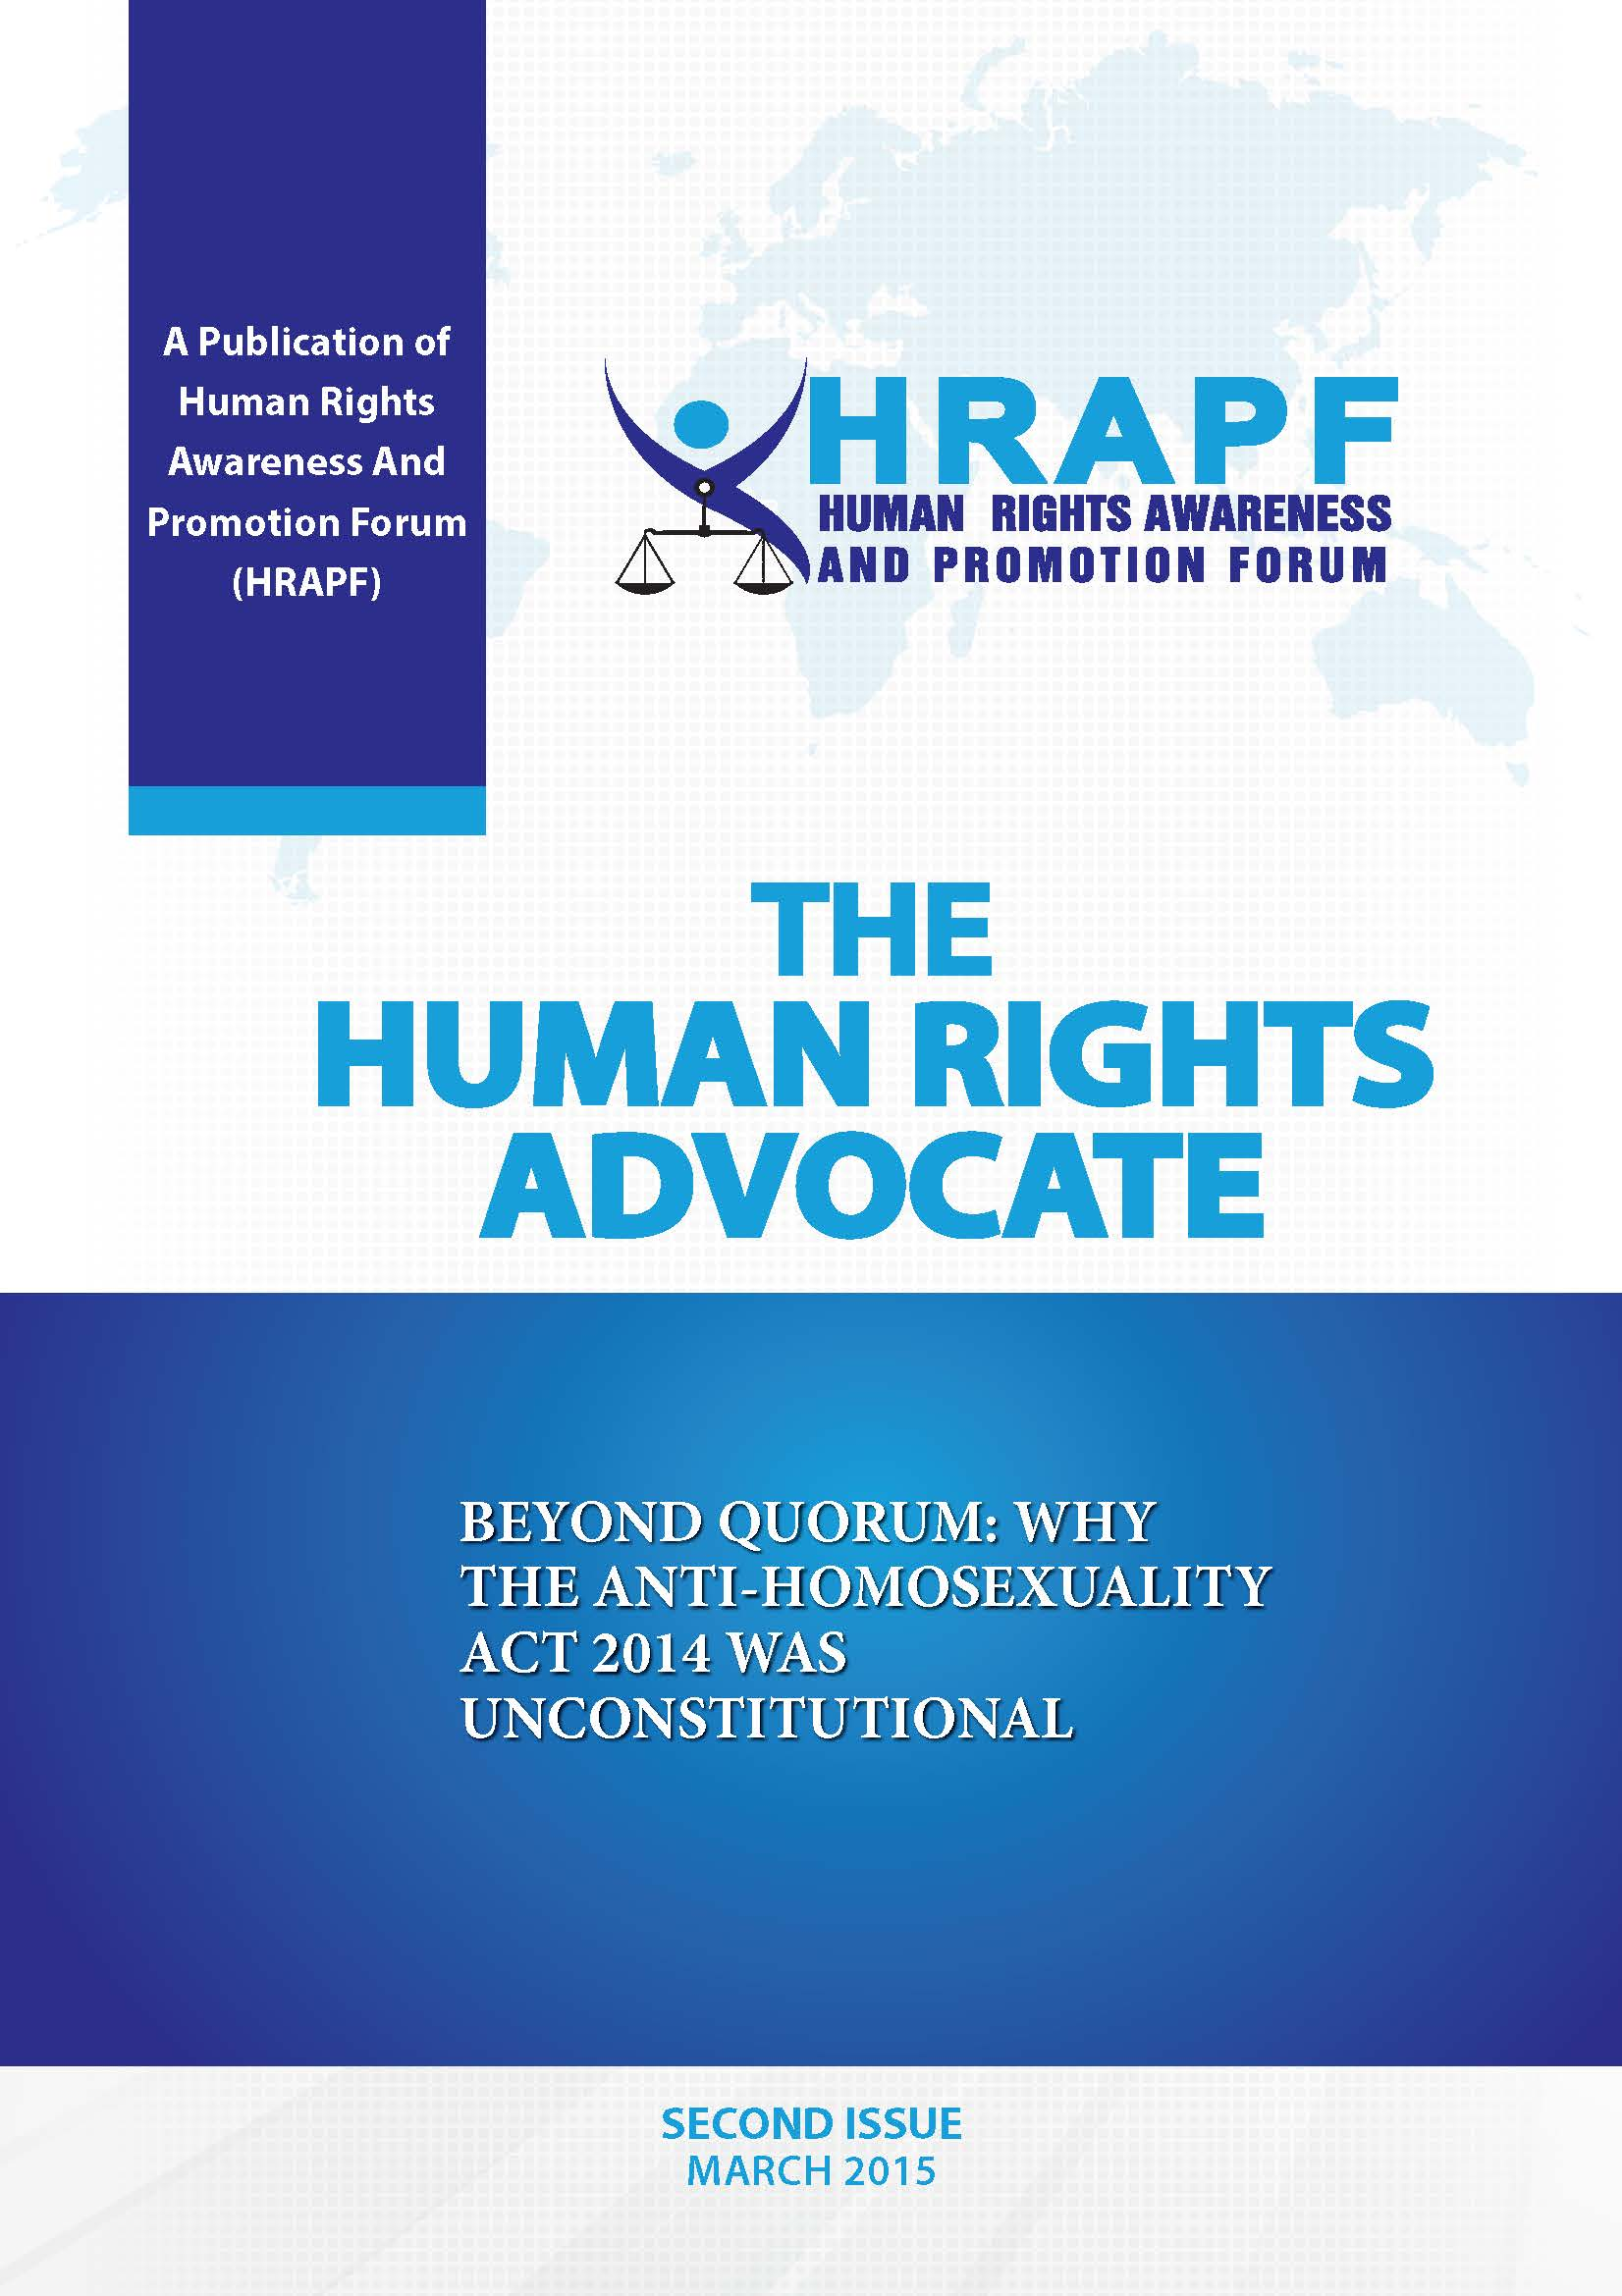 SECOND ISSUE OF THE HUMAN RIGHTS ADVOCATE